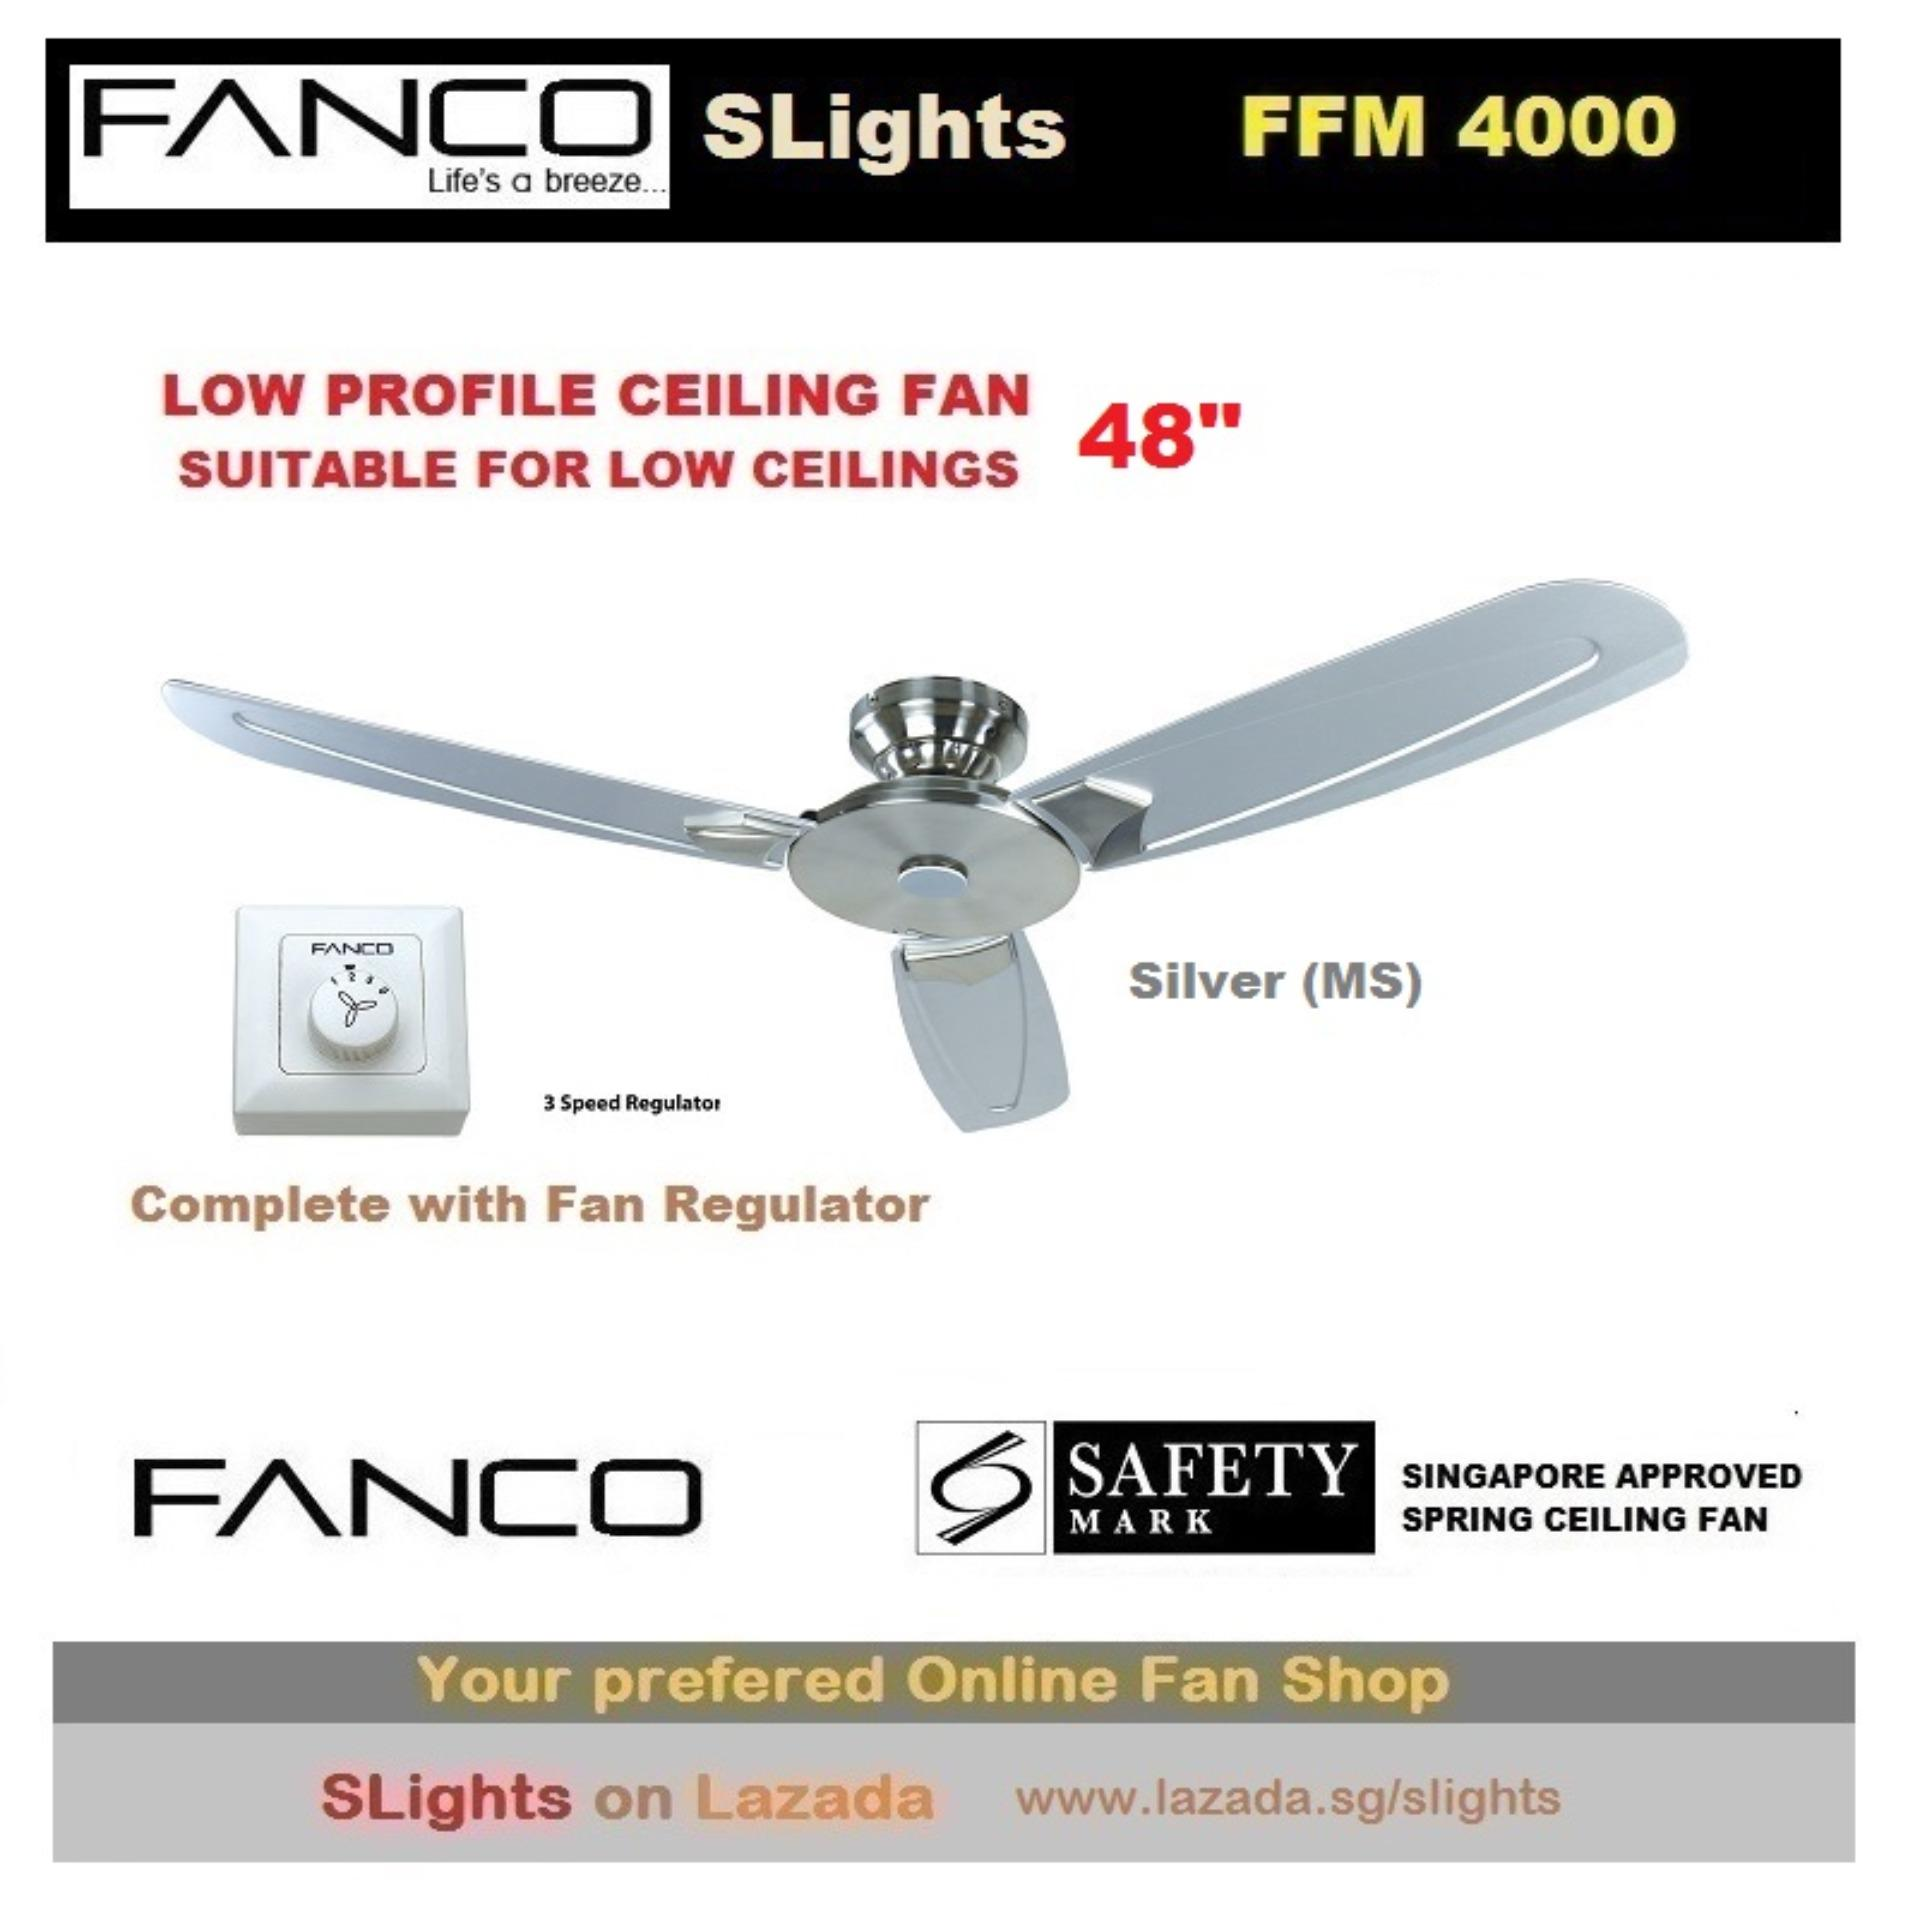 Fanco Ceiling Fan Installation Manual Mail Cabinet